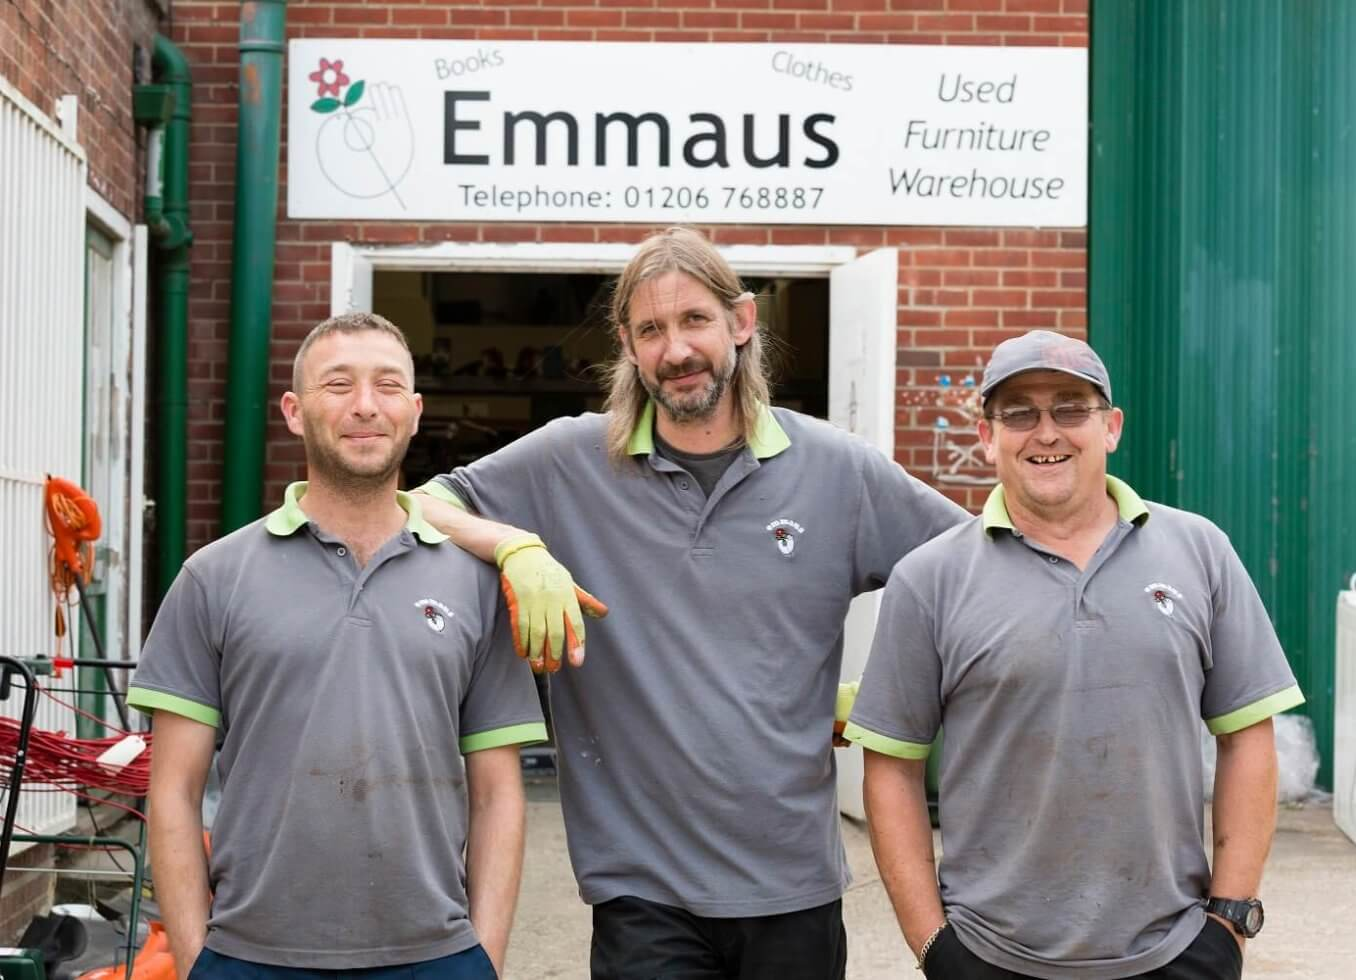 About Emmaus in the UK